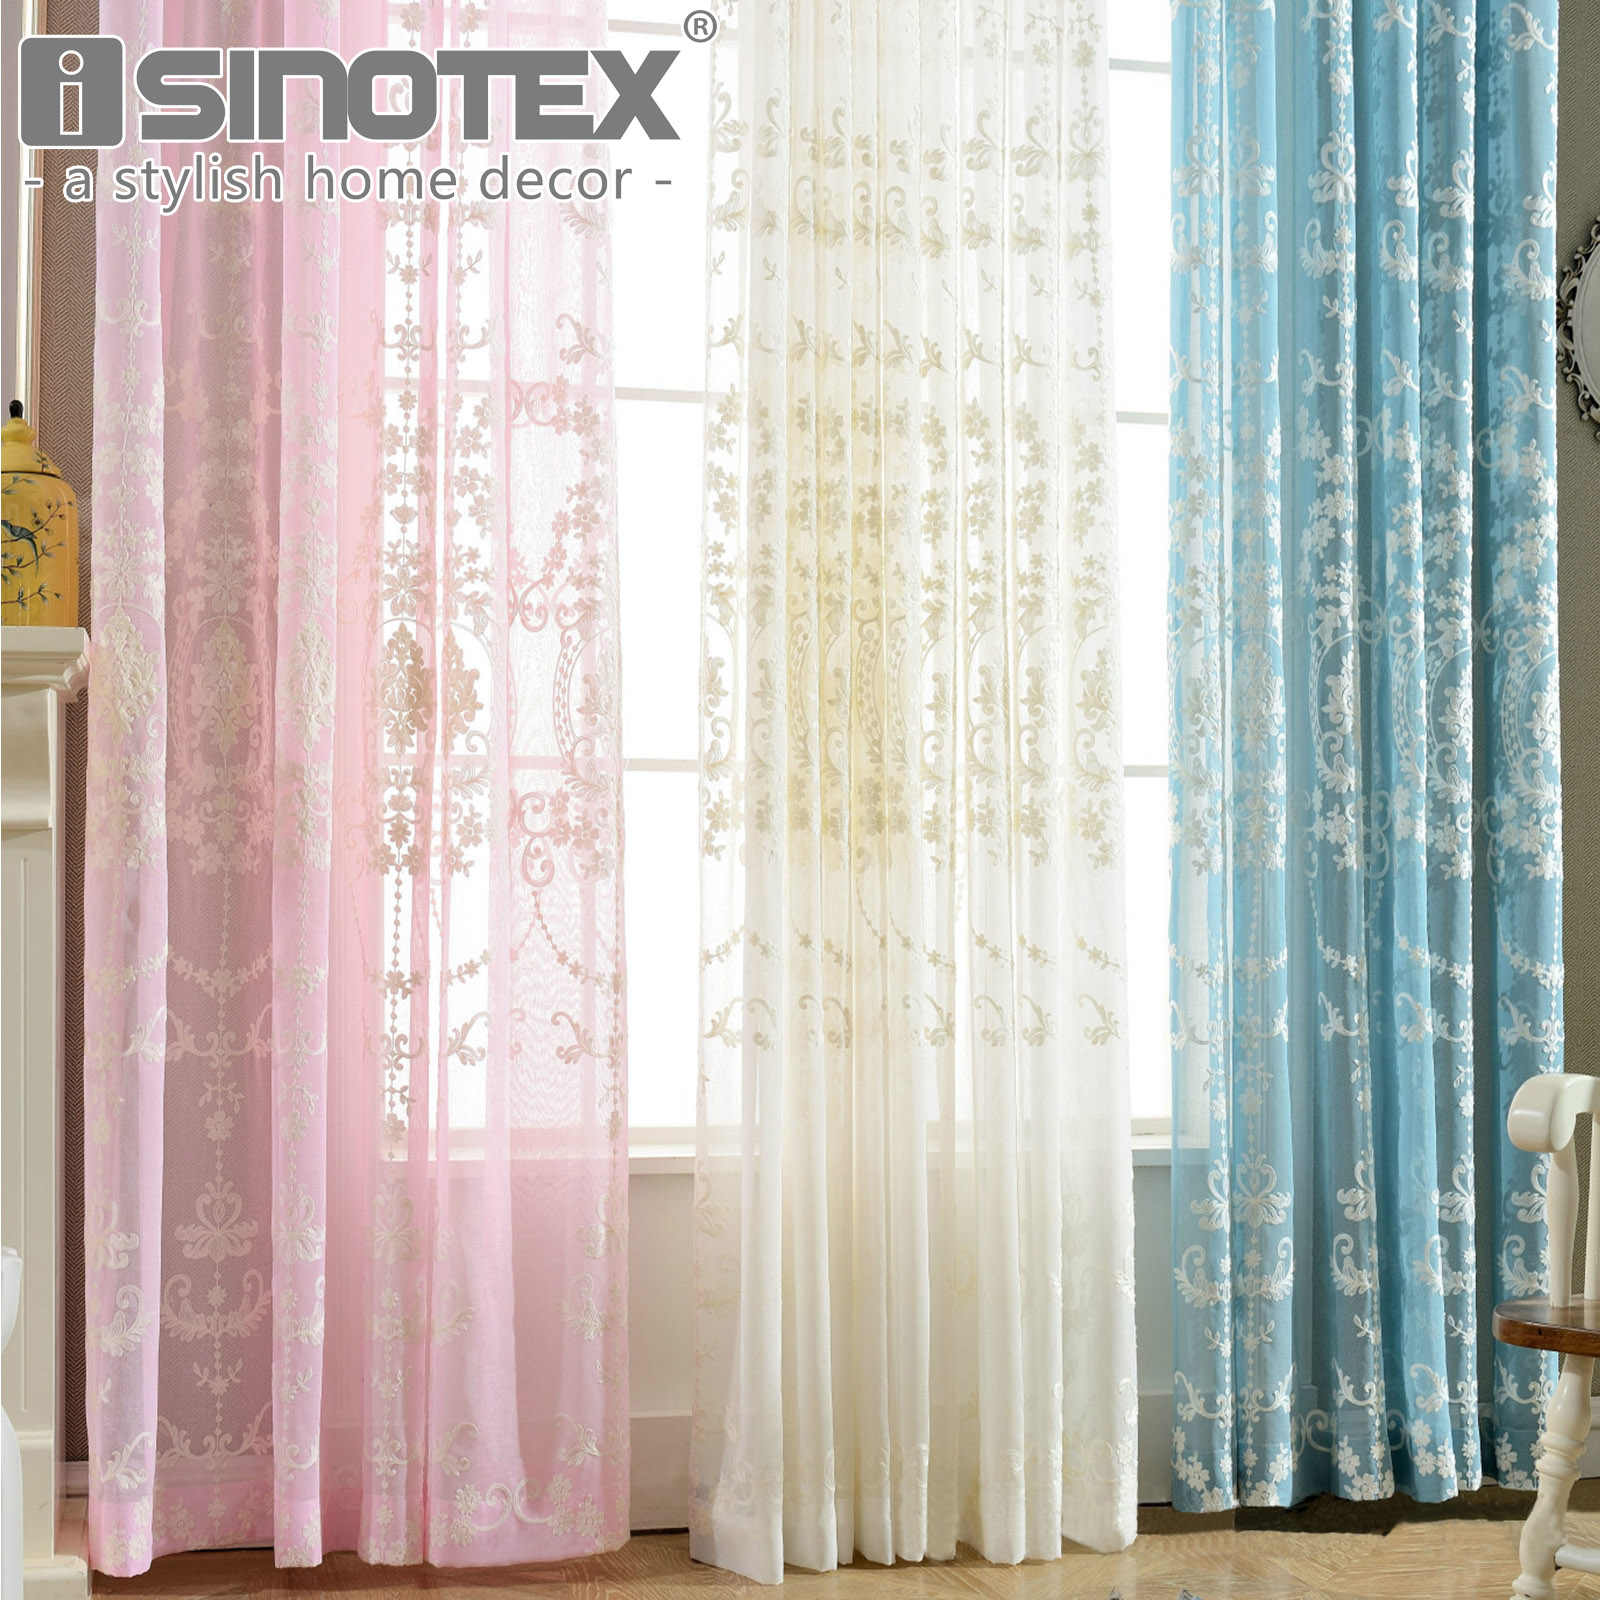 European Style Jacquard Curtains Embroidered Baroque Floral Design Window Treatment Linen Sheer Curtain Drapes Pink White Colors